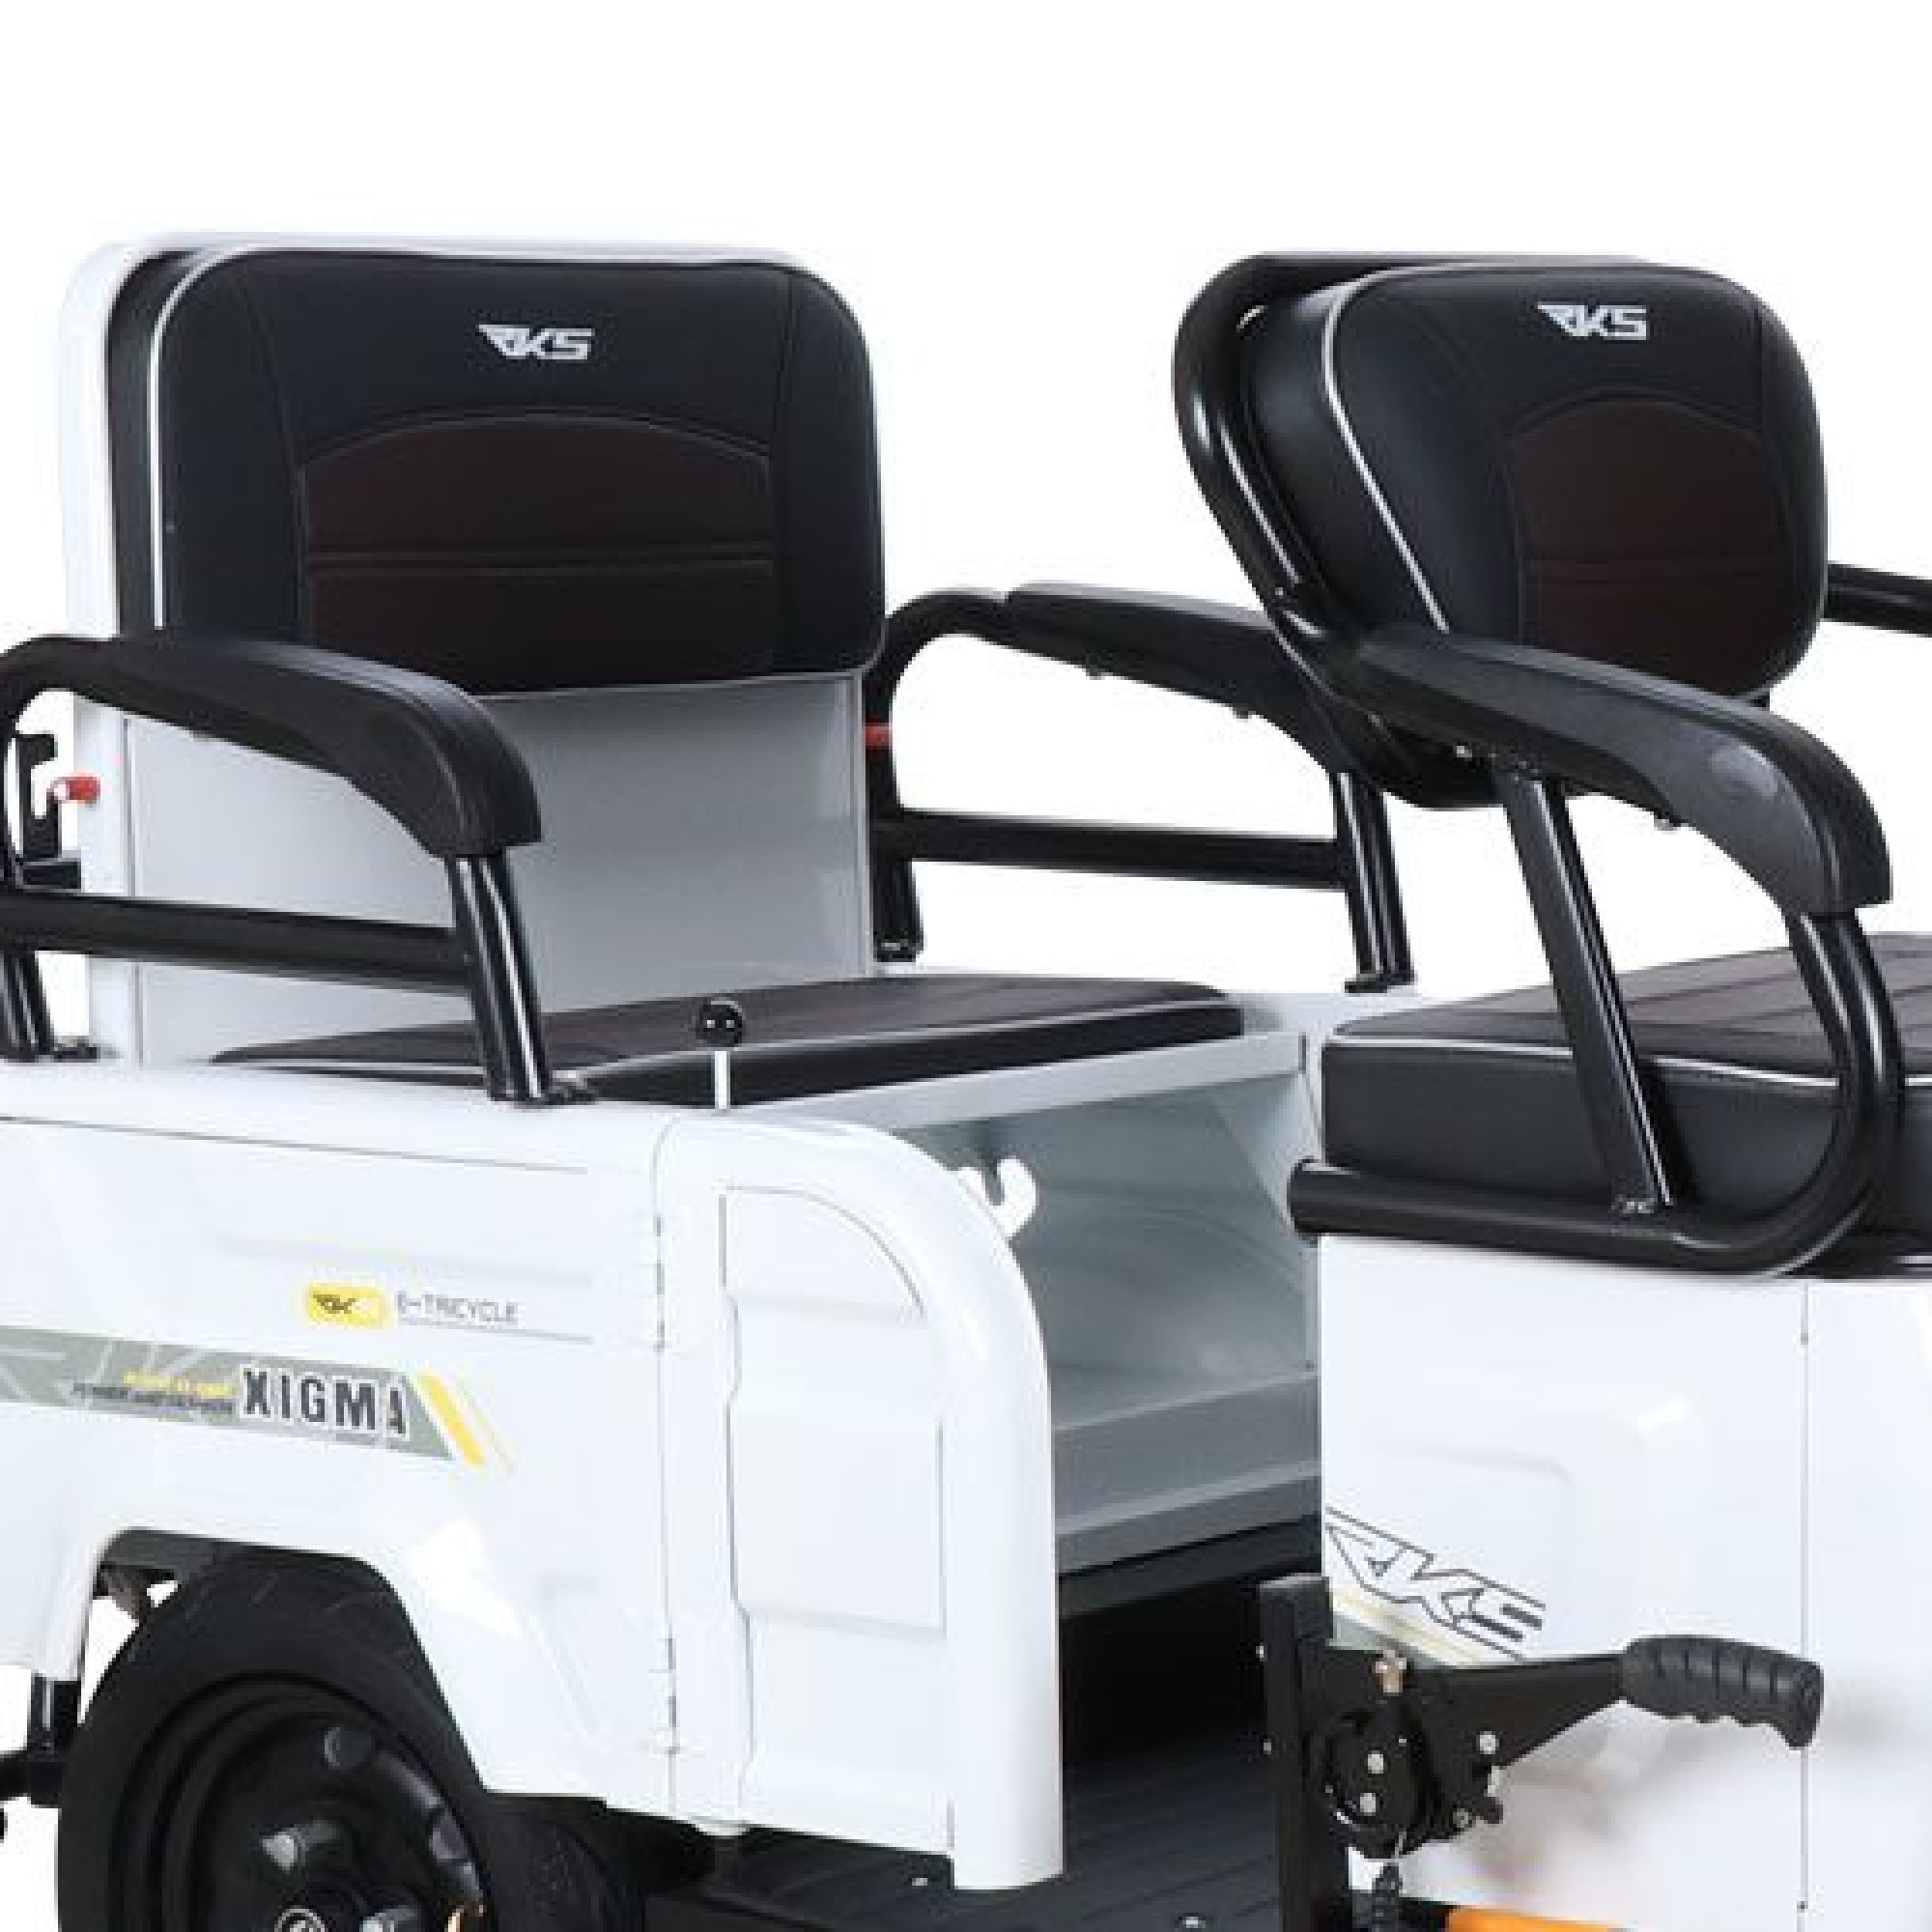 Vehicul electric RKS Xigma